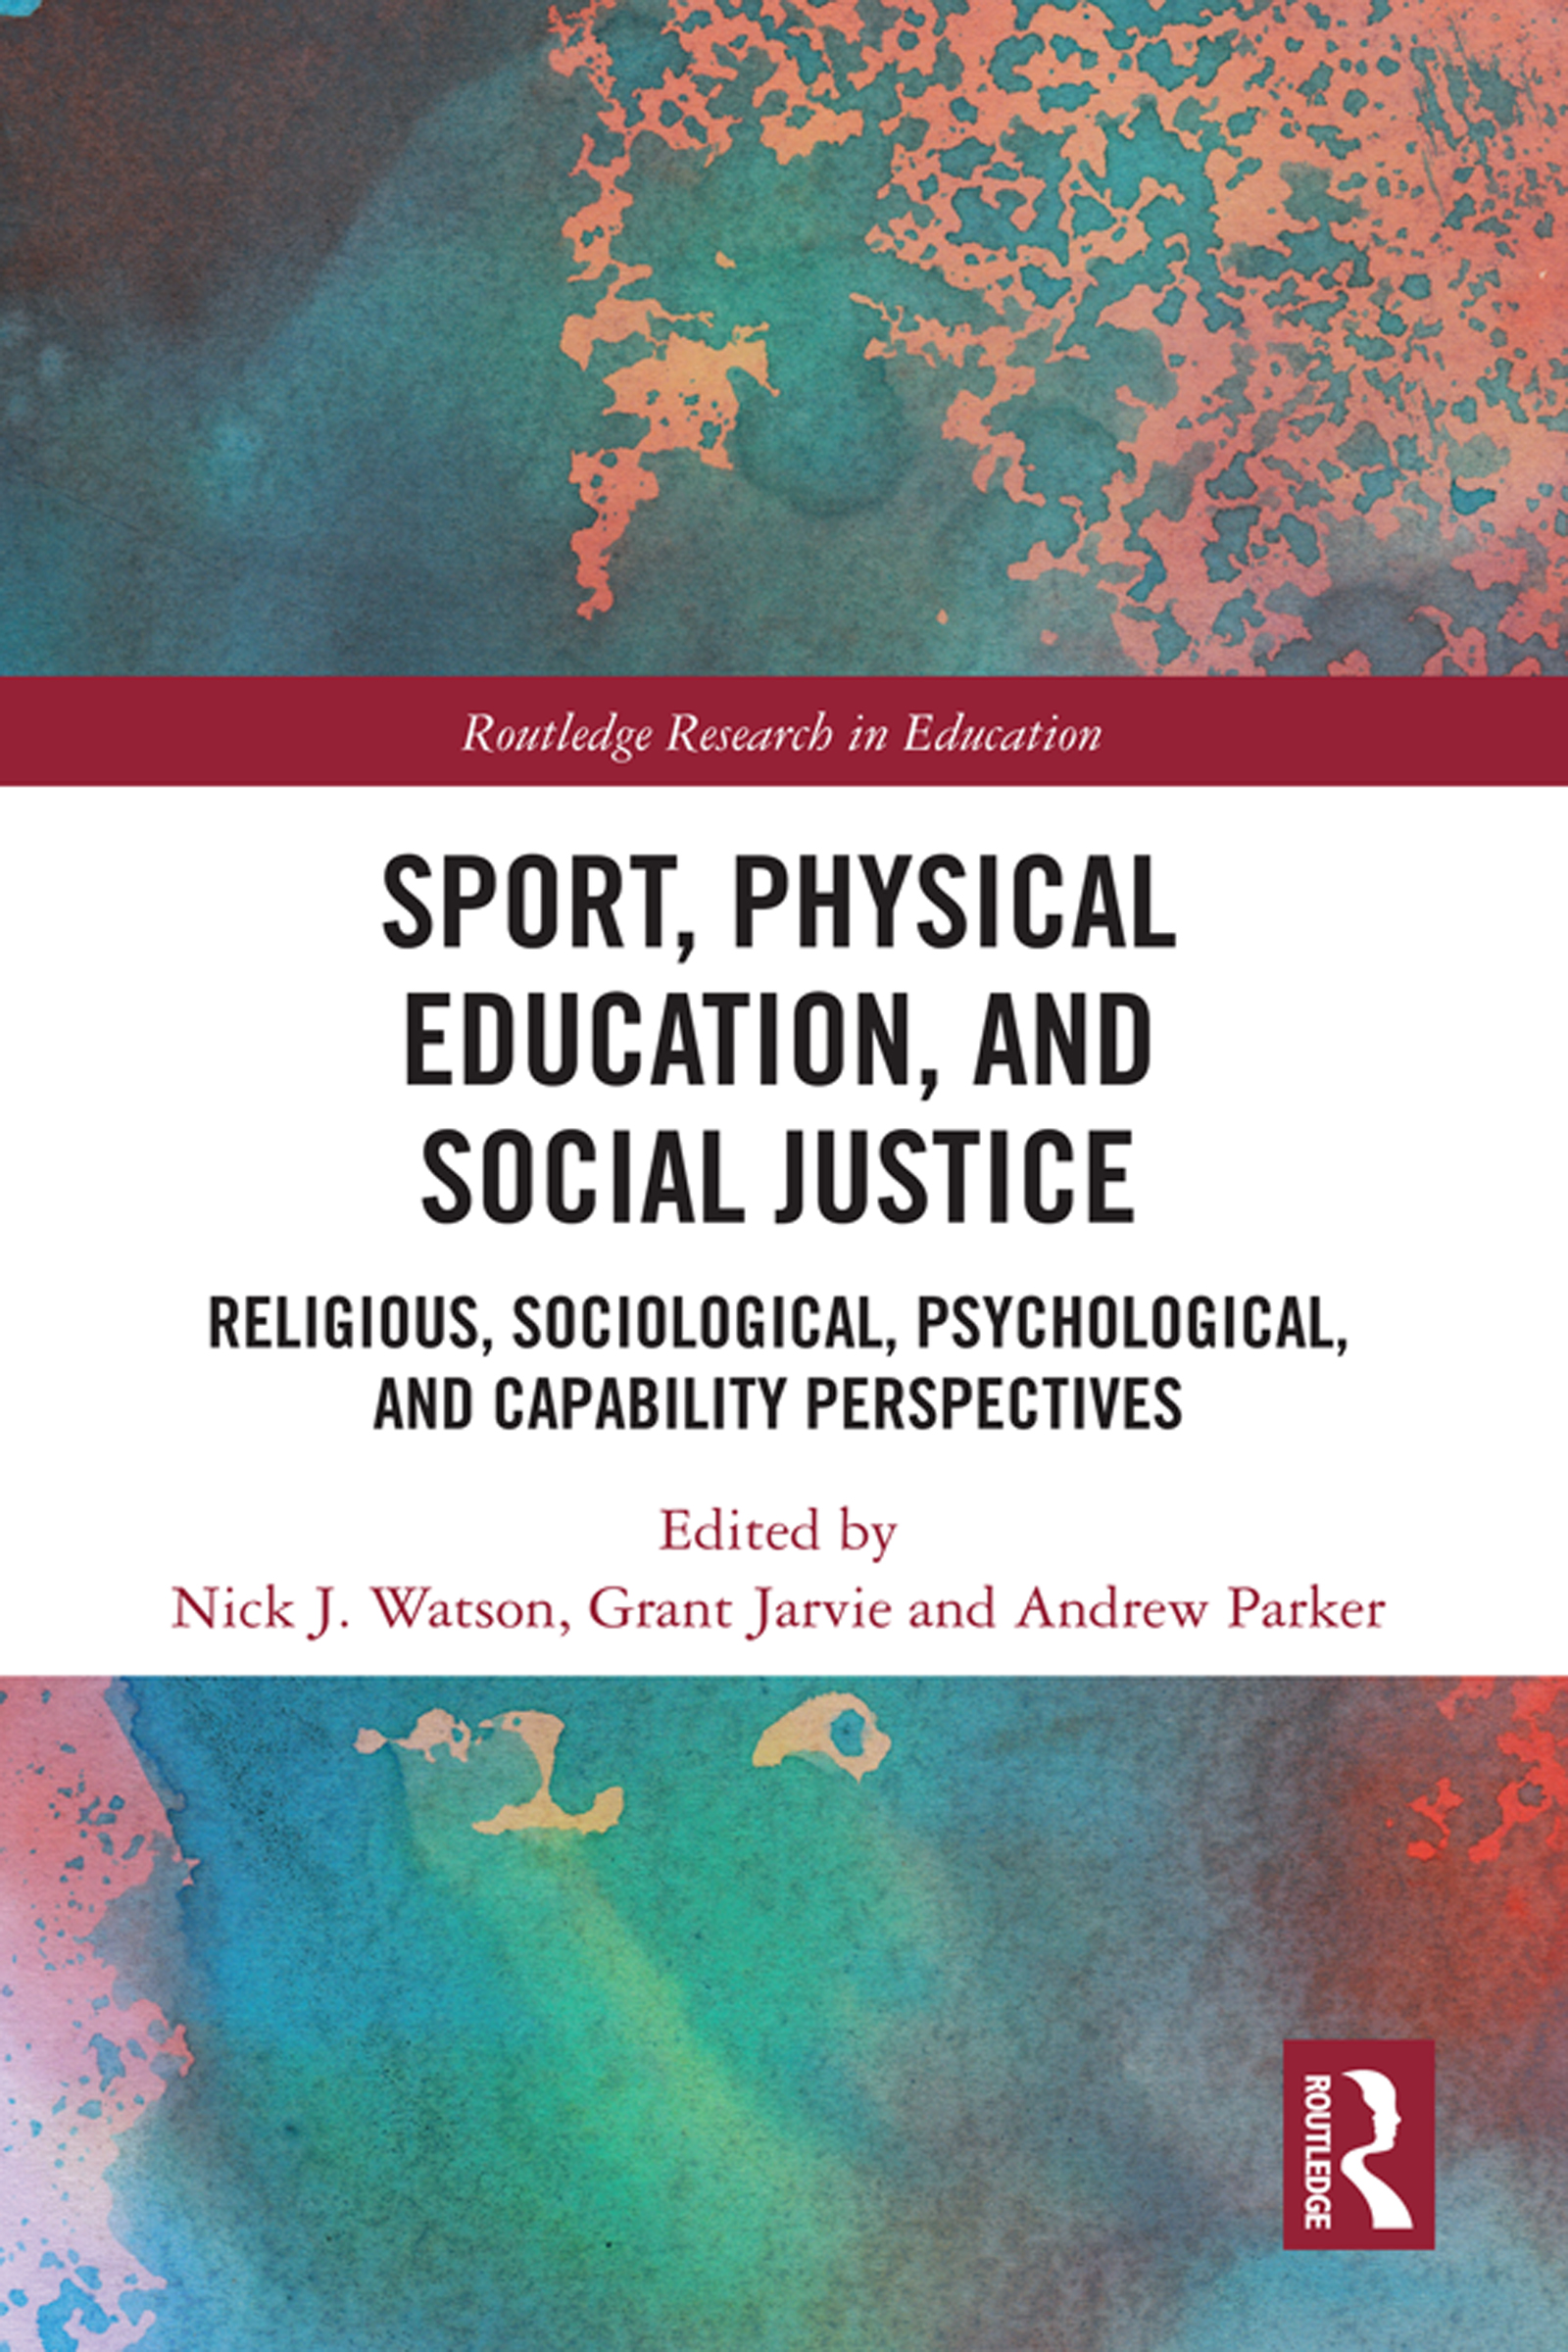 Sport, Physical Education, and Social Justice